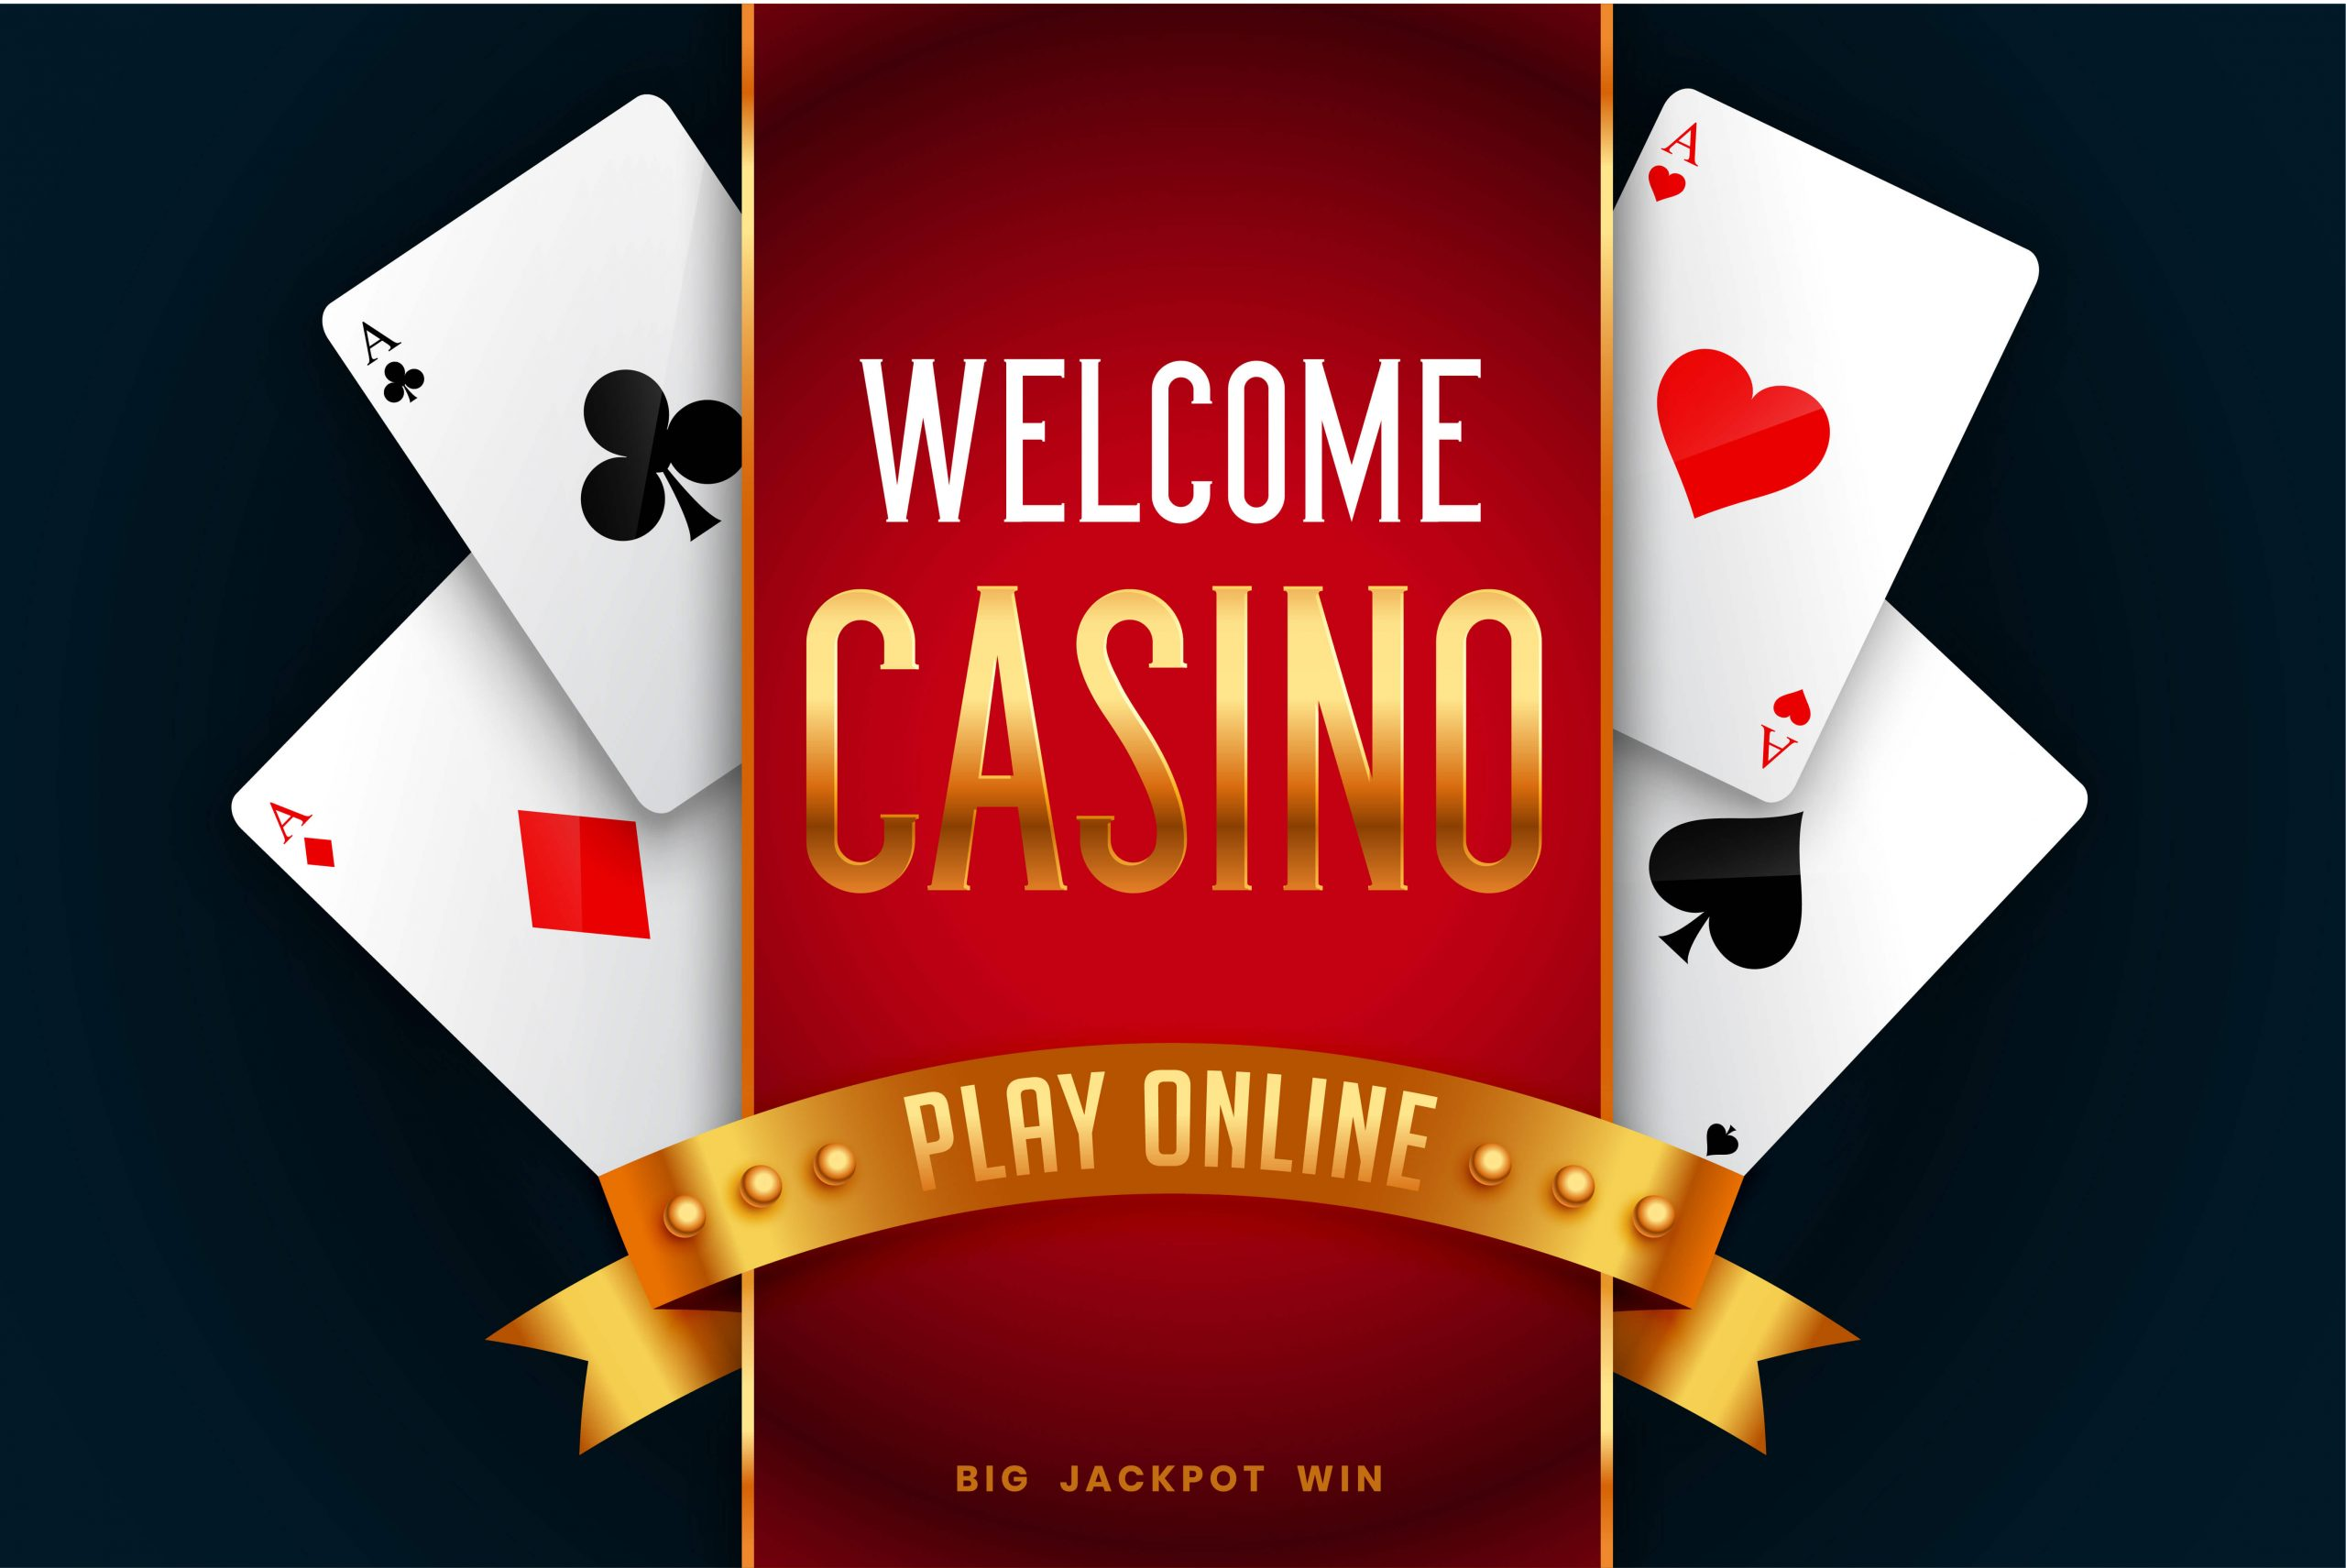 casino_welcome